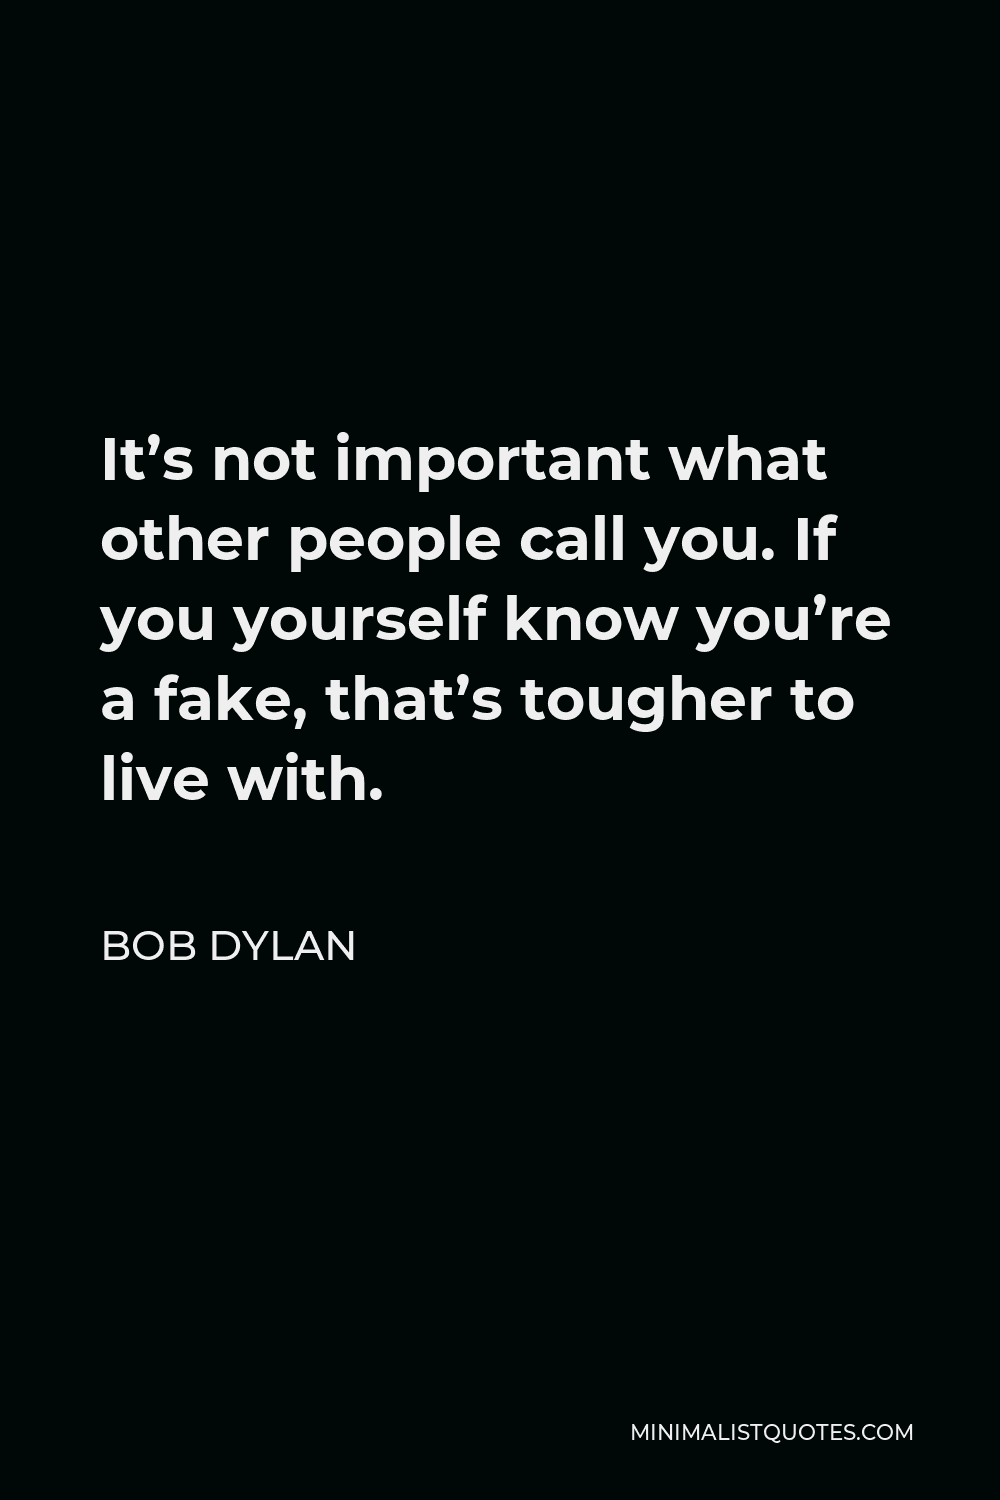 Bob Dylan Quote - It's not important what other people call you. If you yourself know you're a fake, that's tougher to live with.